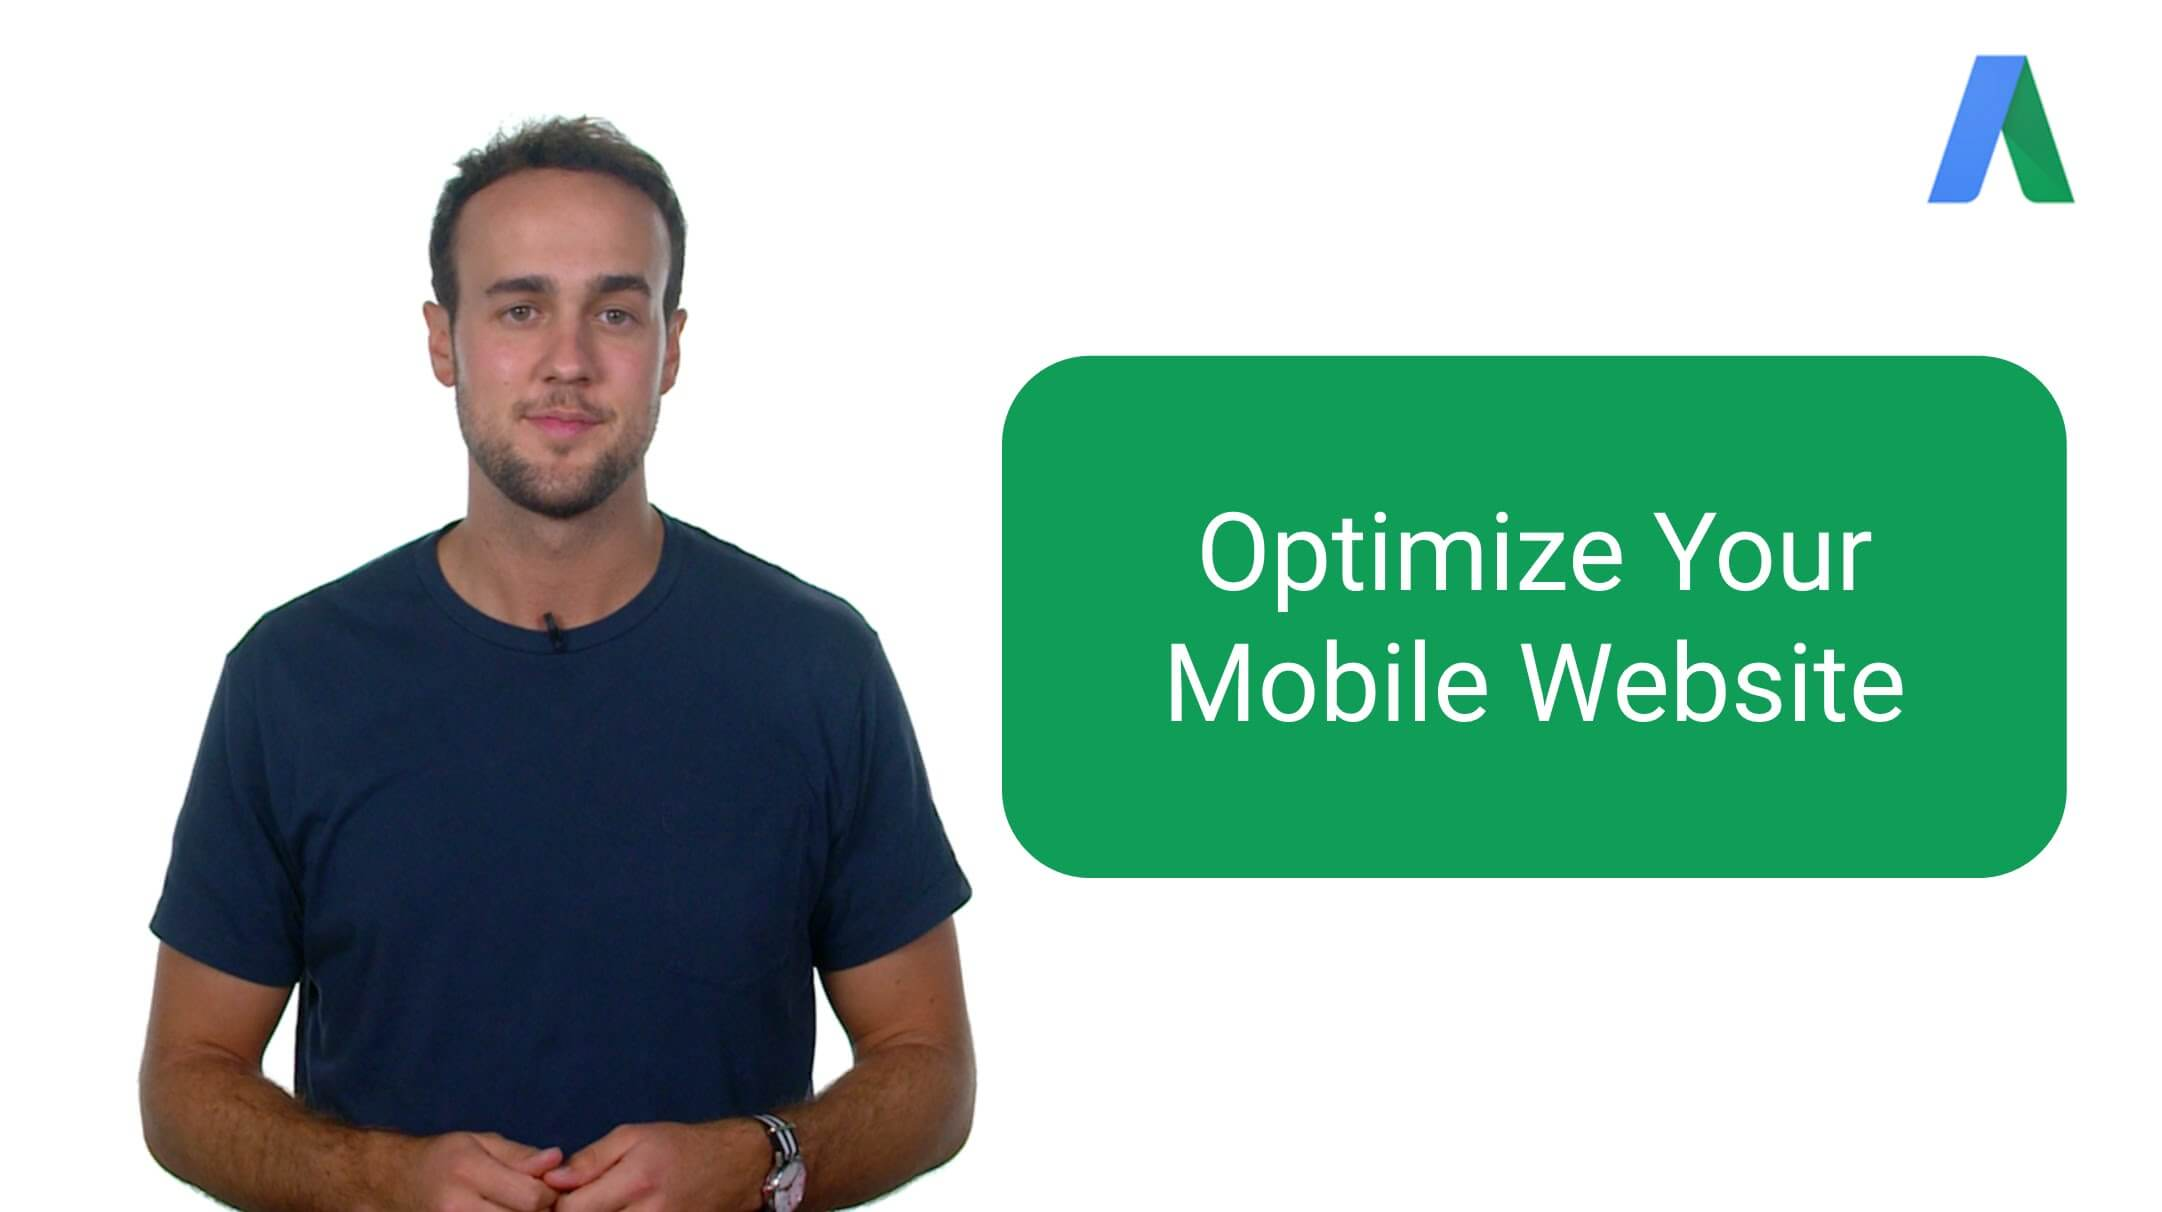 How to Optimize Your Mobile Website